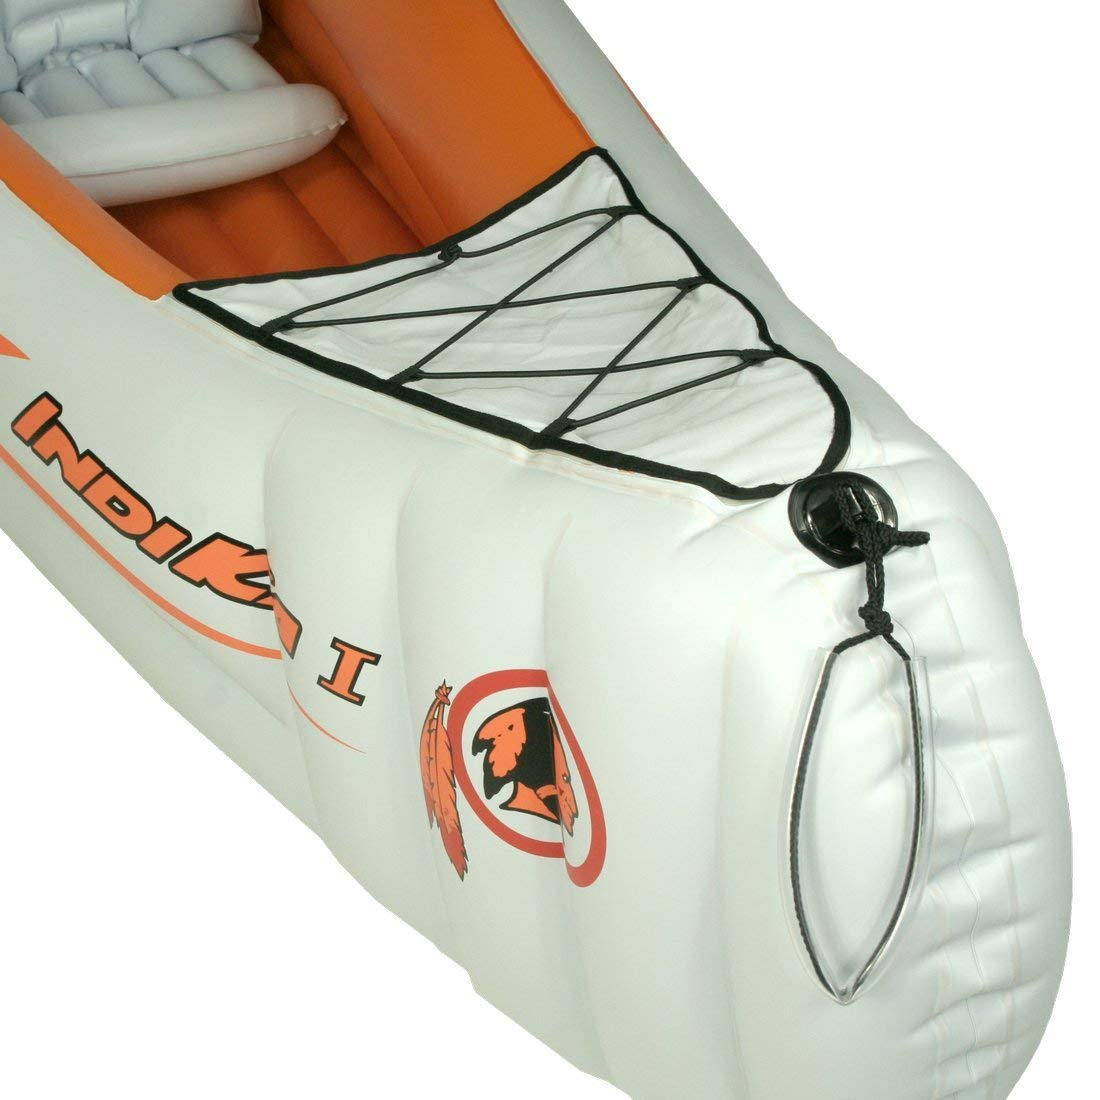 La mejor canoa hichable -oferta amazon-kayak decathlon barato